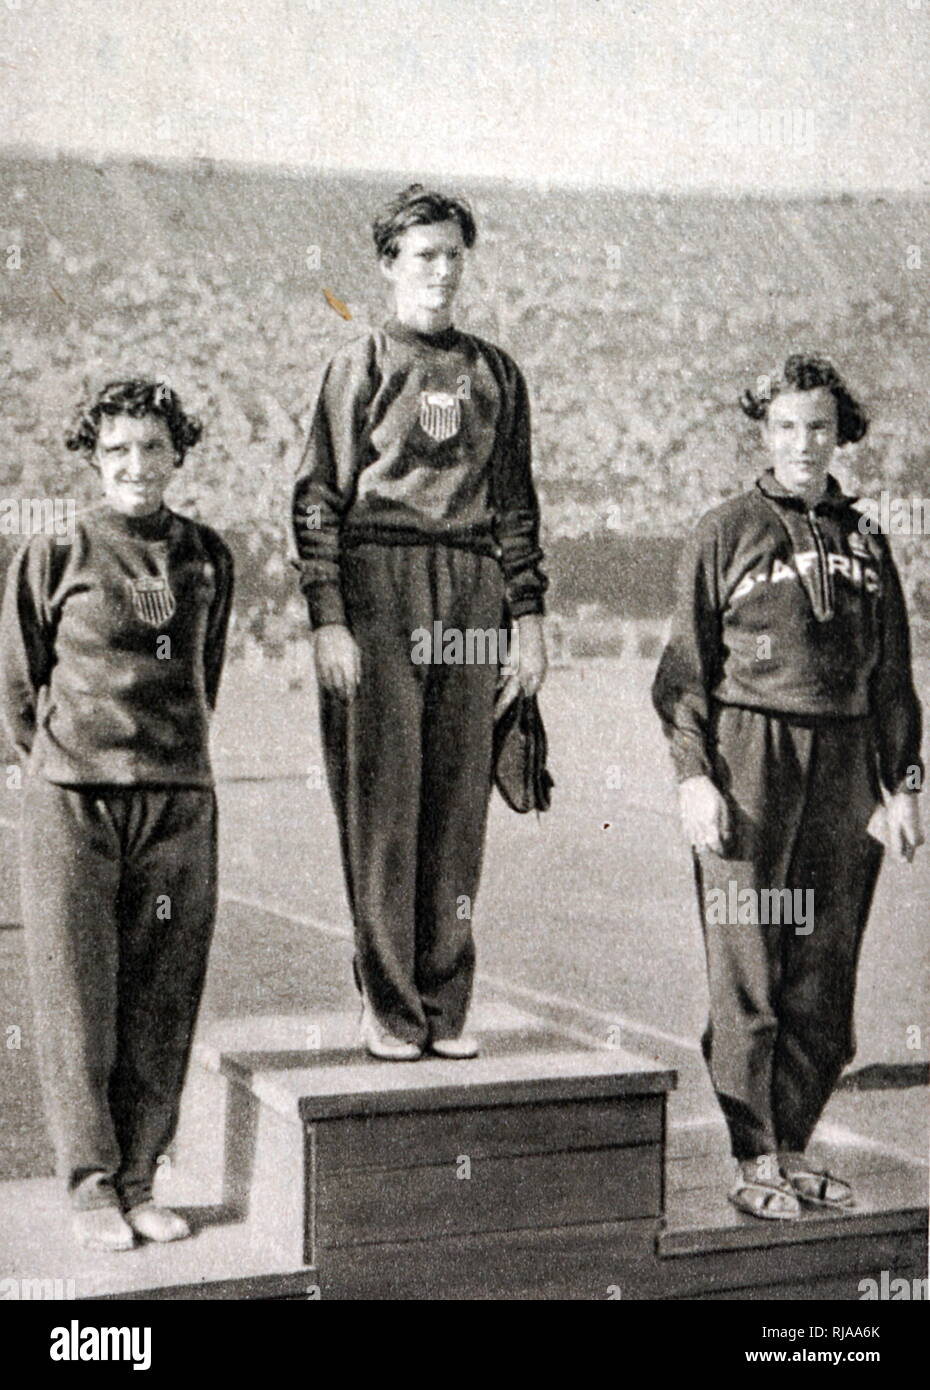 80m Hurdles podium at the 1932 Olympic games.  Mildred Ella 'Babe' Didrikson Zaharias (1911 - 1956) took gold for the USA. Evelyne Ruth Hall (1909 - 1993) took silver for the USA. Marjorie Rees Clark (1909 - 1993) took bronze for South Africa. - Stock Image